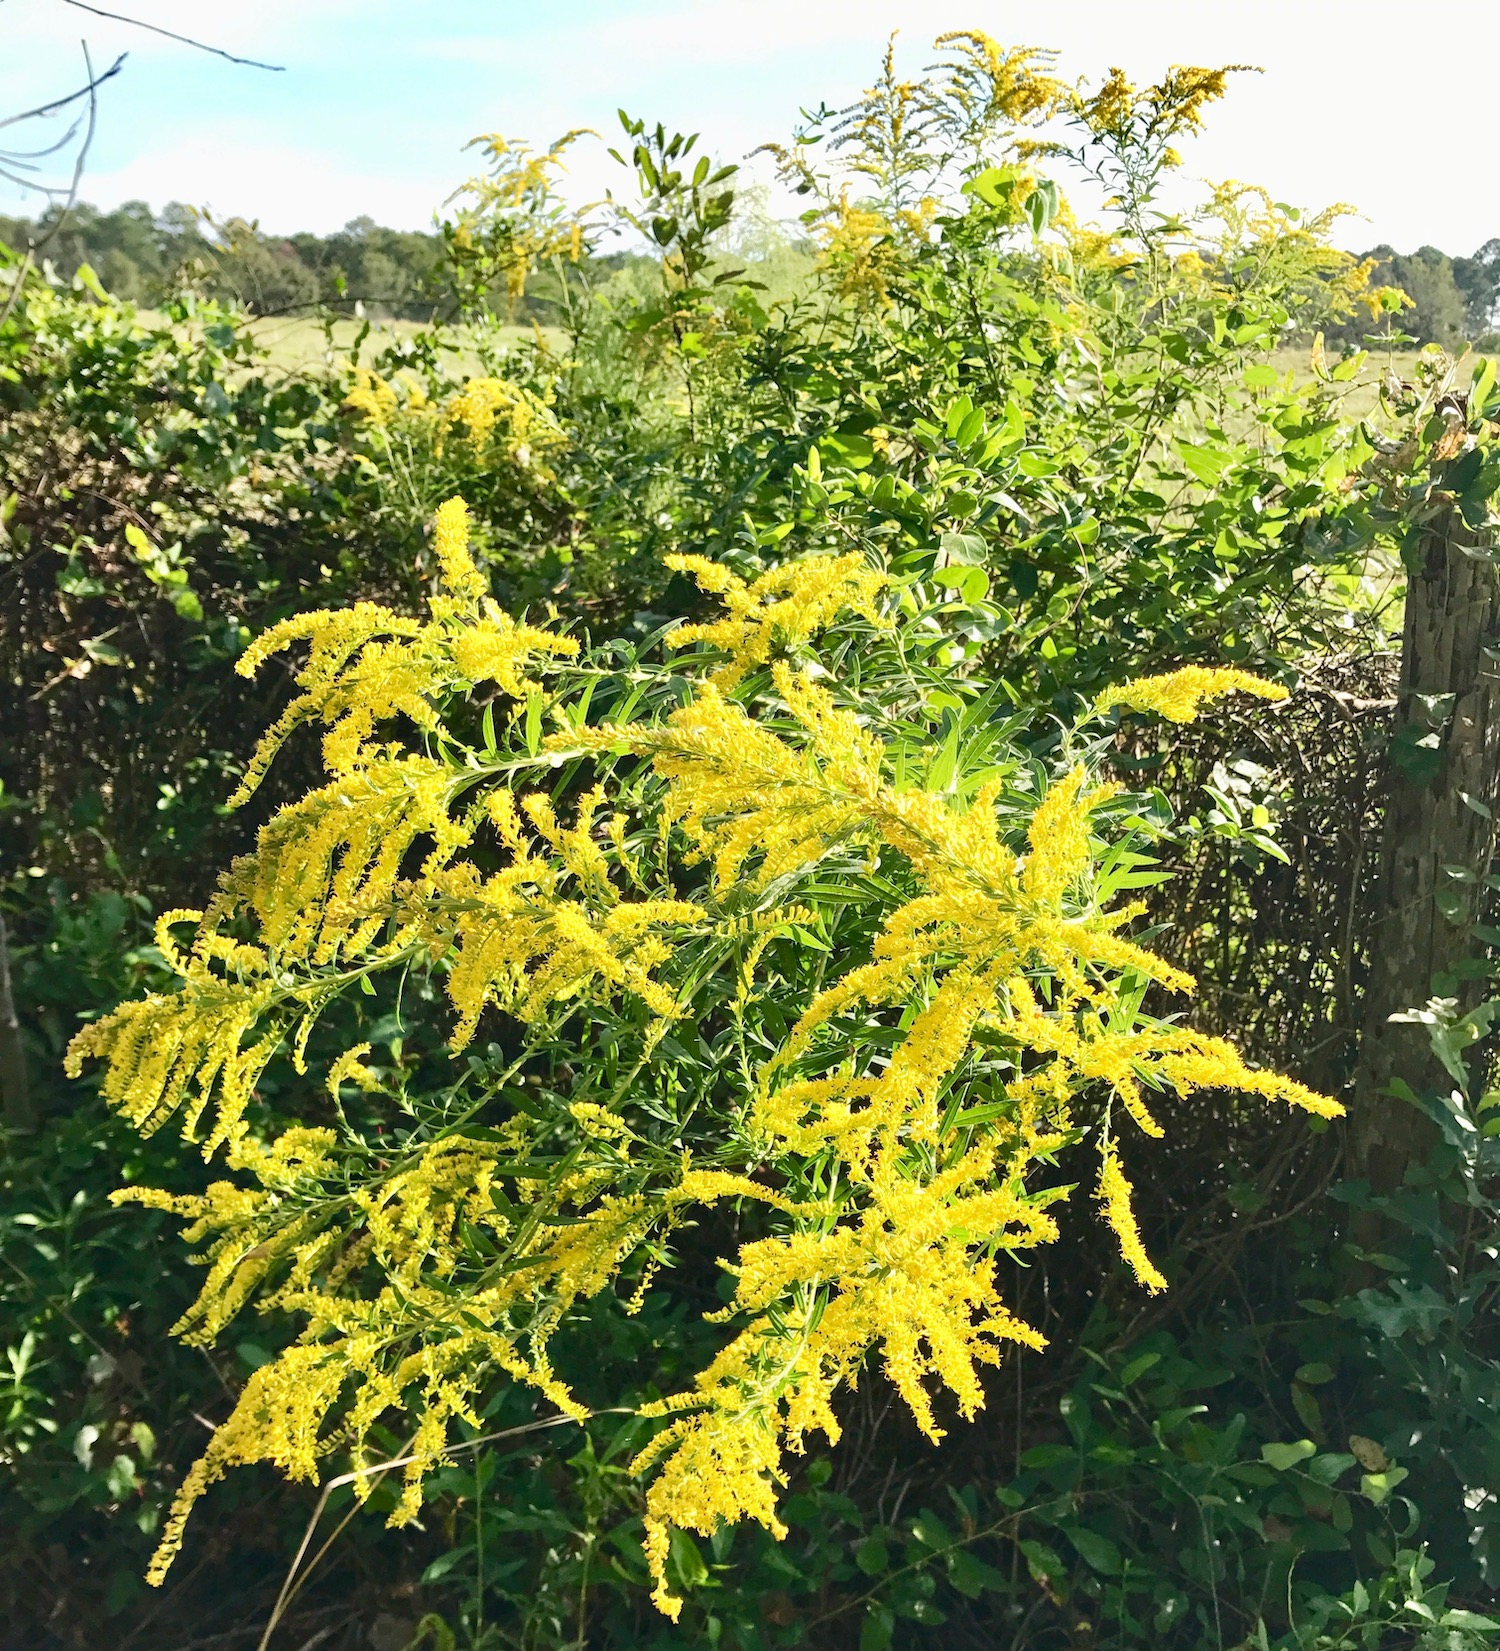 Autumn colors in the south include brilliant yellows of goldenrod.